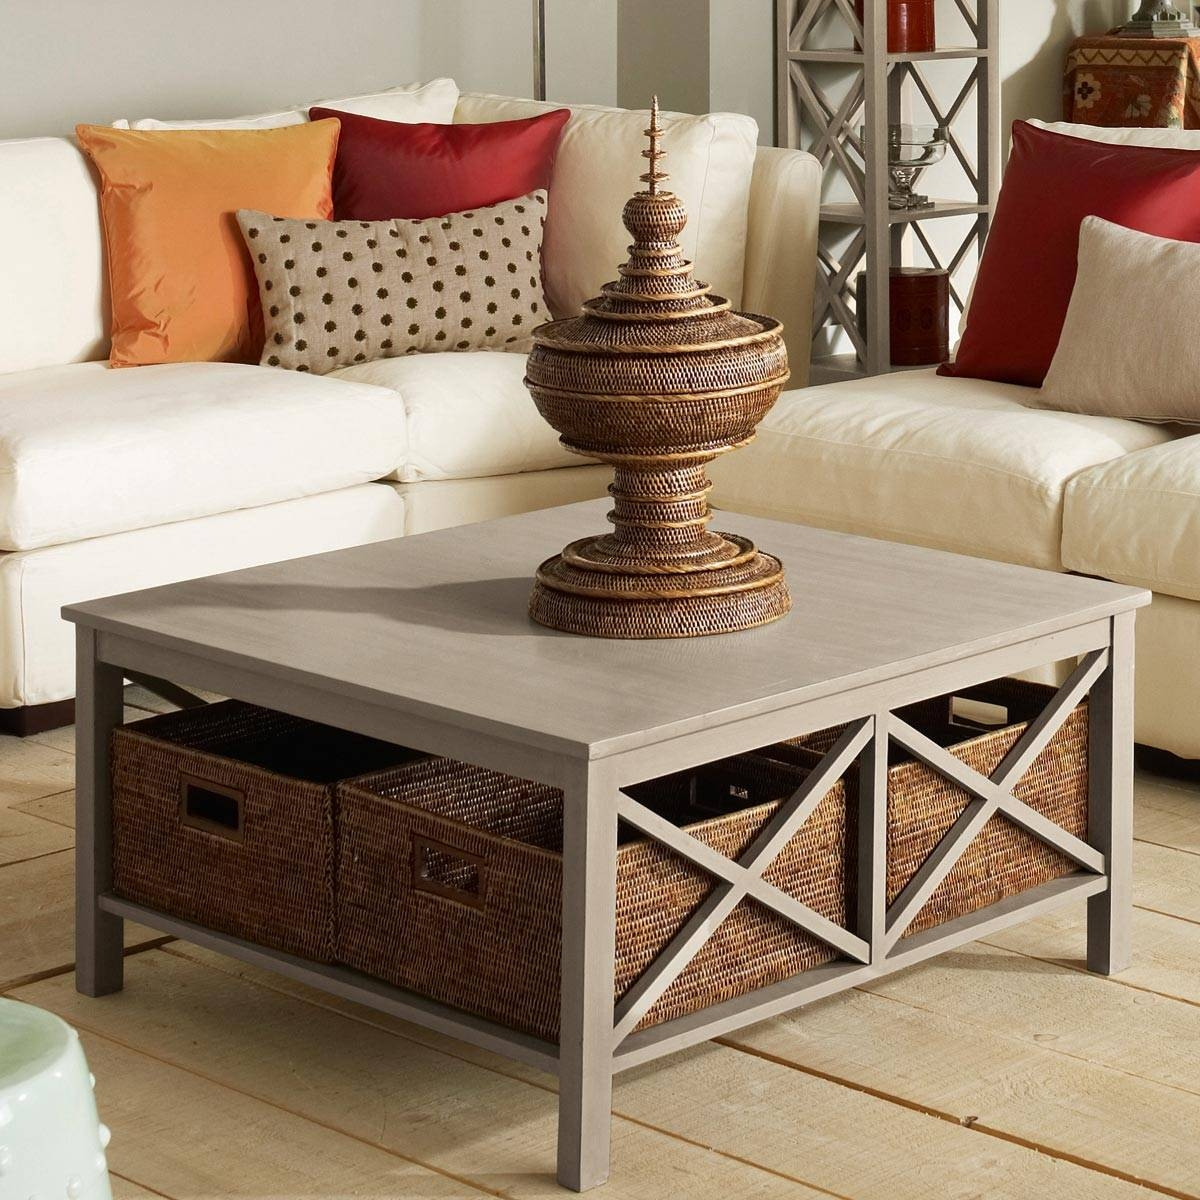 Square Coffee Table With Storage | Coffee Tables with Large Square Coffee Tables (Image 29 of 30)